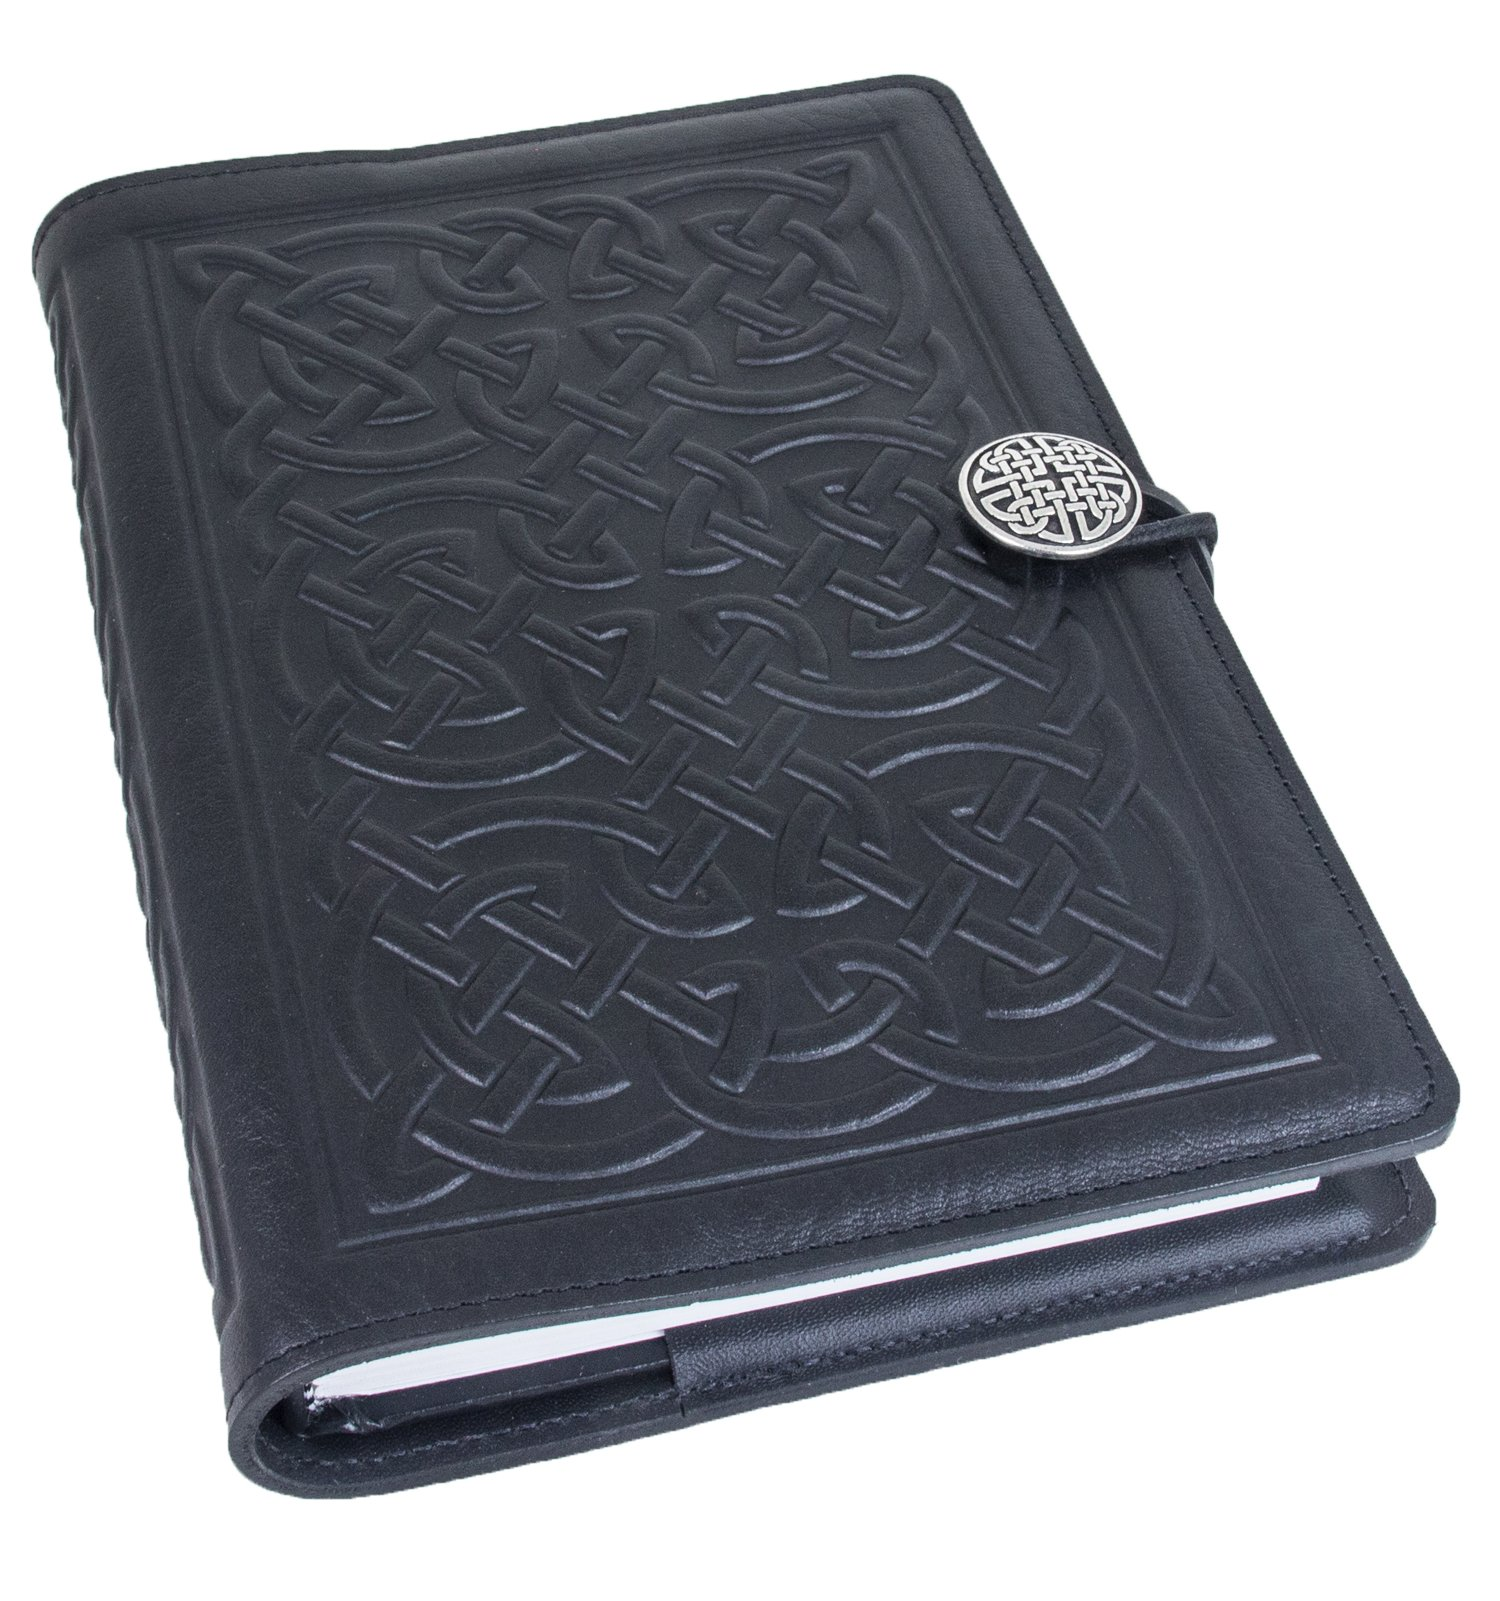 Genuine Leather Refillable Journal Cover with a Hardbound Blank Insert, 6x9 Inches, Bold Celtic, Black with a Pewter Button, Made in The USA by Oberon Design by Oberon Design